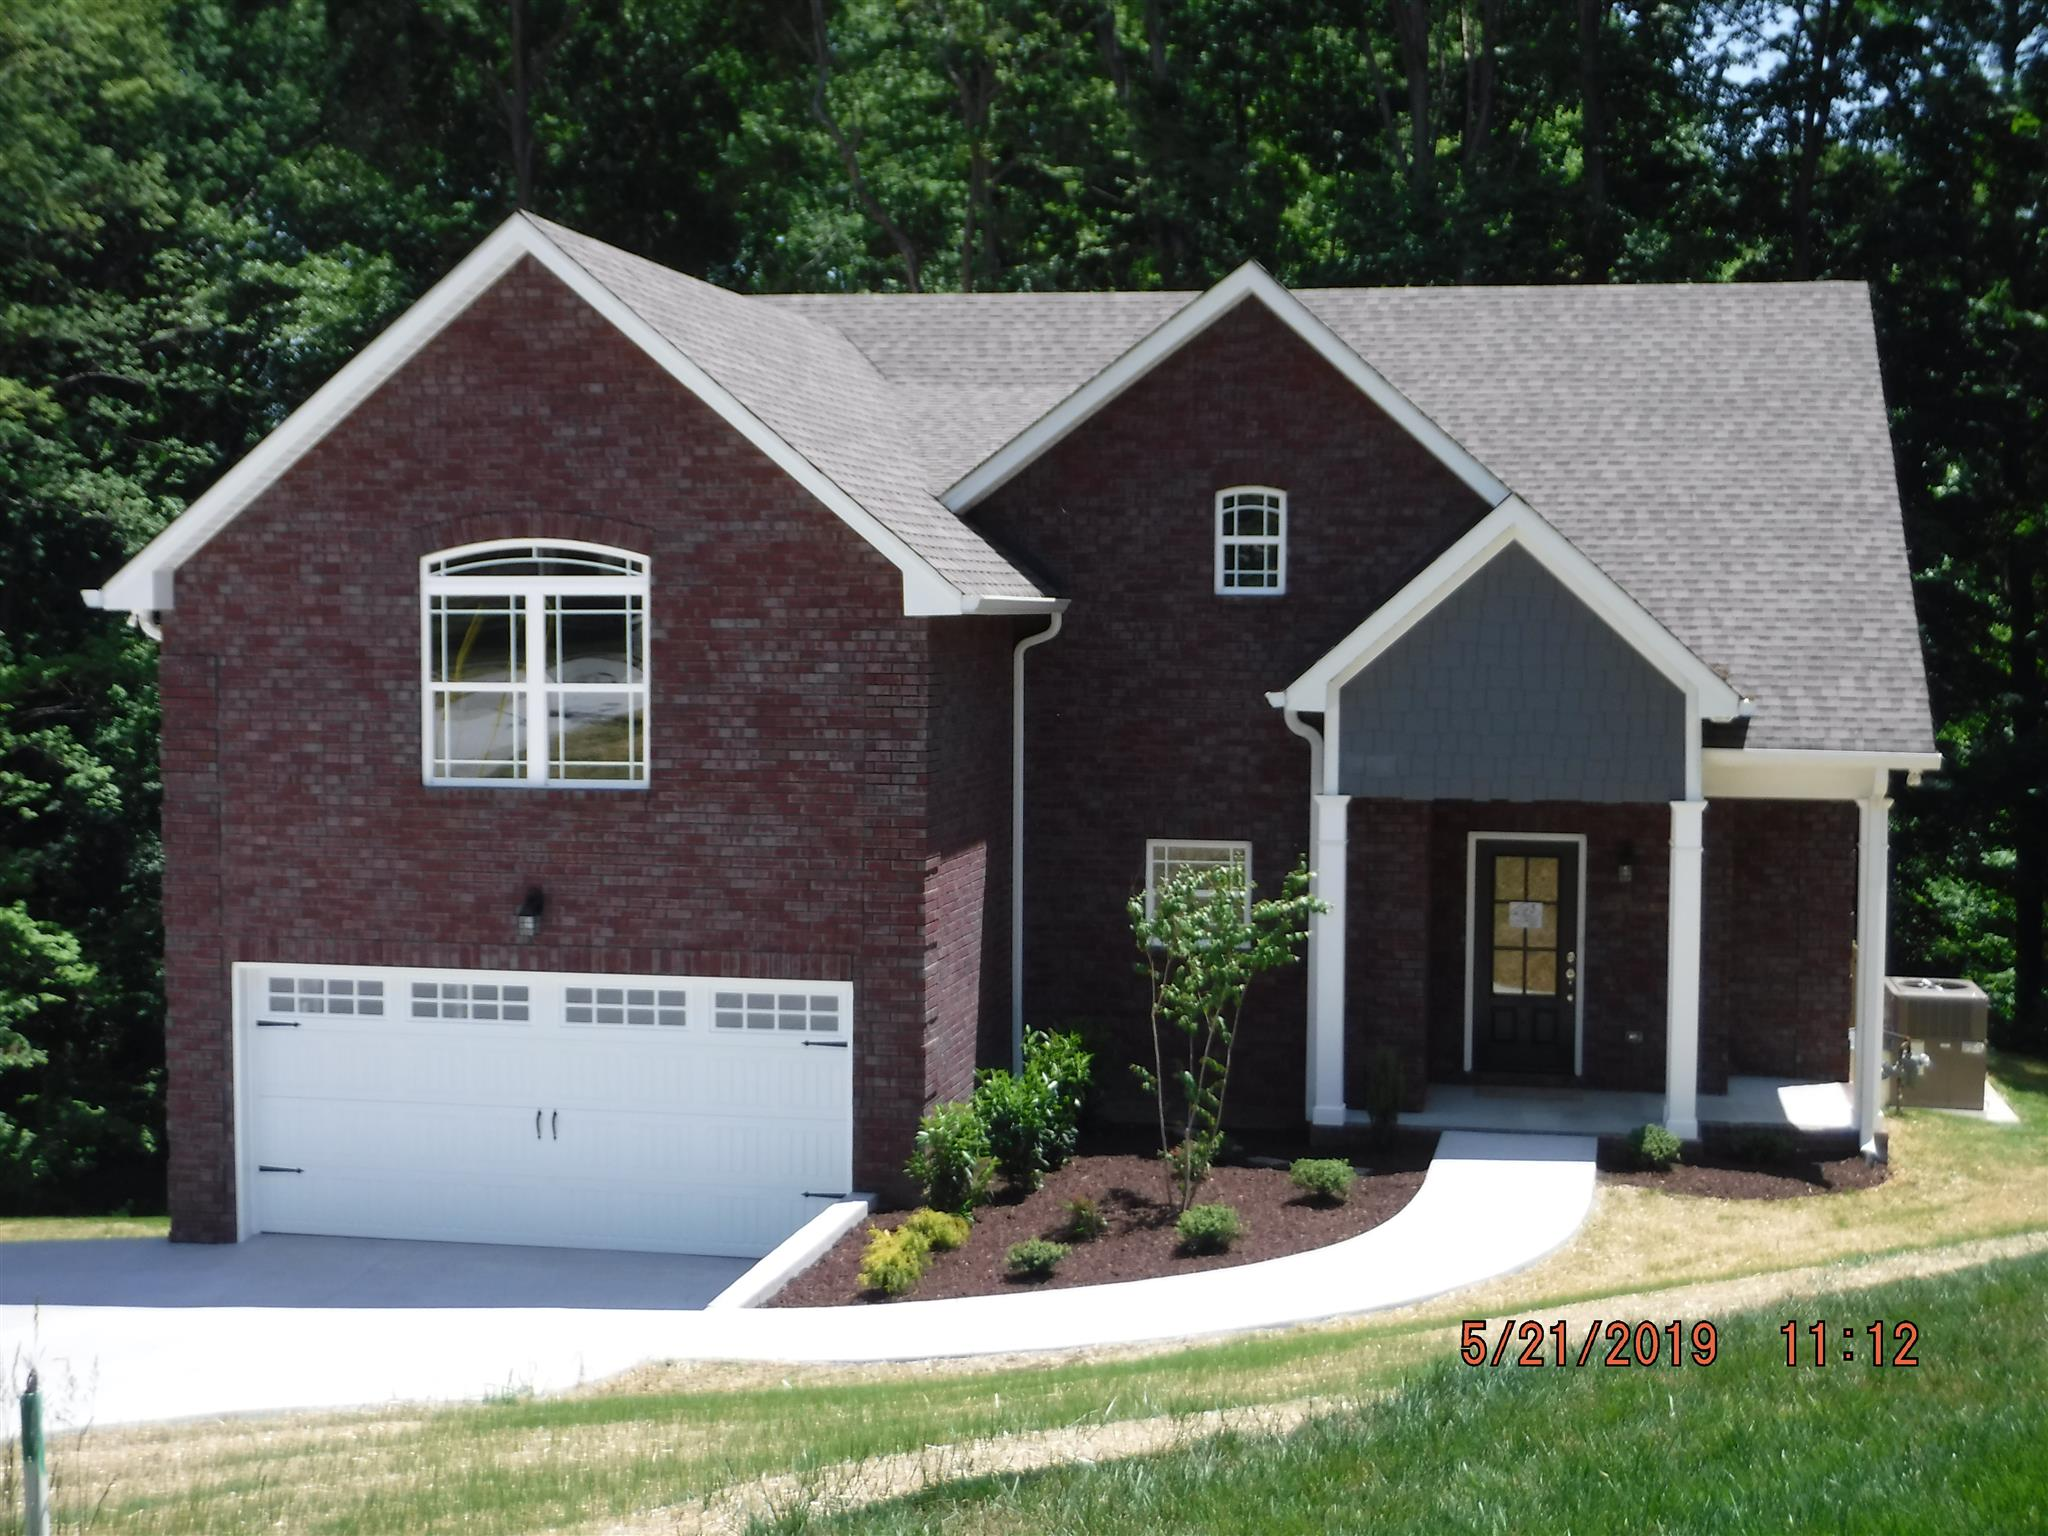 3047 Gracie Ann Dr, Greenbrier, TN 37073 - Greenbrier, TN real estate listing